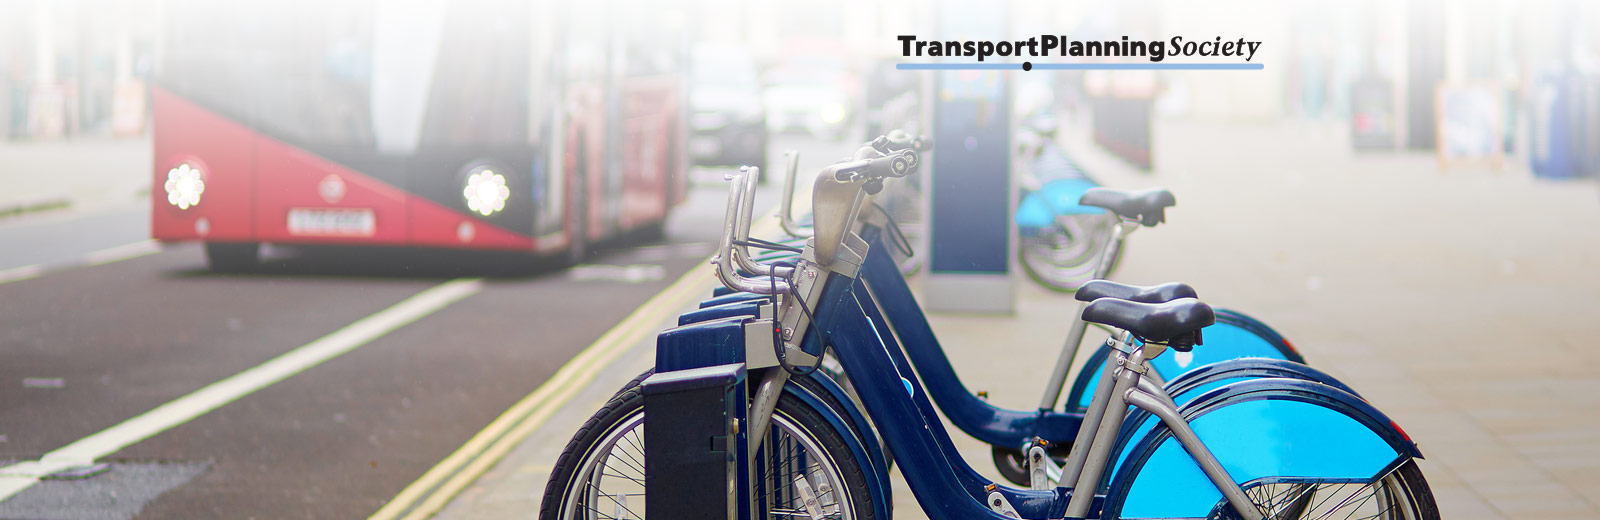 A row of blue bicycles on a London street with a London bus in the background